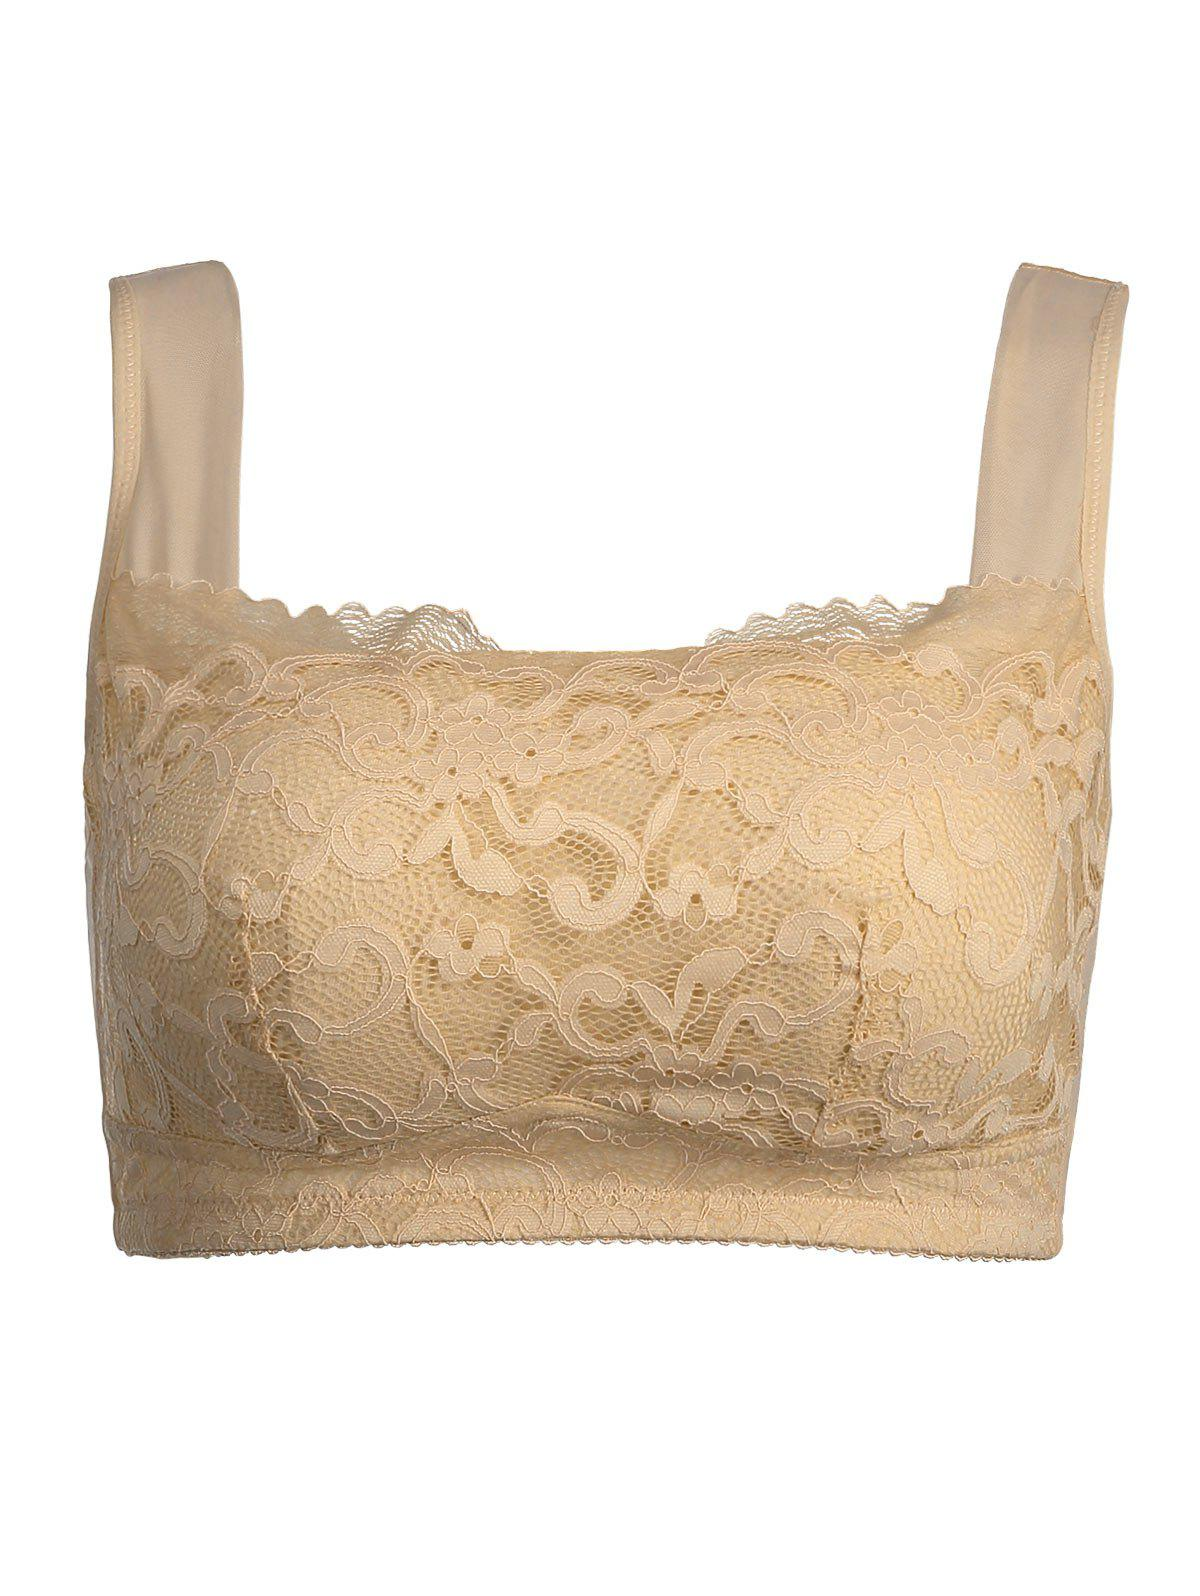 Lace Trim Padded Wirefree Plus Size BraWOMEN<br><br>Size: 3XL; Color: COMPLEXION; Materials: Nylon,Polyester,Spandex; Bra Style: Padded; Cup Shape: Full Cup; Support Type: Wire Free; Strap Type: Non-adjusted Straps; Closure Style: Three Hook-and-eye; Pattern Type: Solid; Embellishment: Lace; Style: Everyday; Weight: 0.2000kg; Package Contents: 1 x Bra;